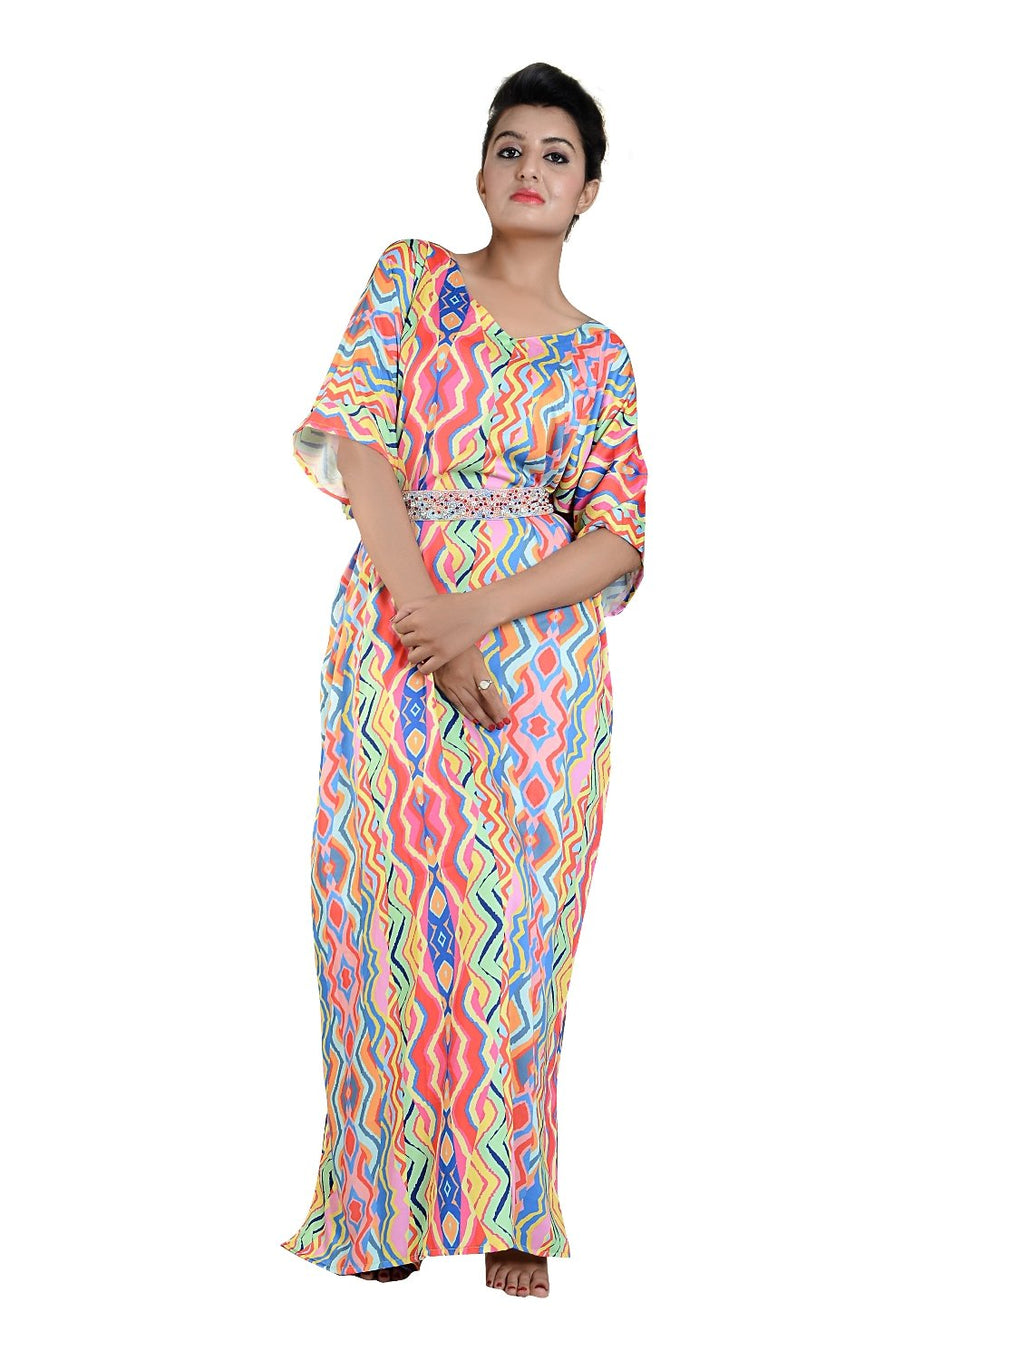 Beautiful one piece jewelled full length resort wear beach coverup kaftan dress silk kaftan evening maxi gown 61 - Silk kaftan